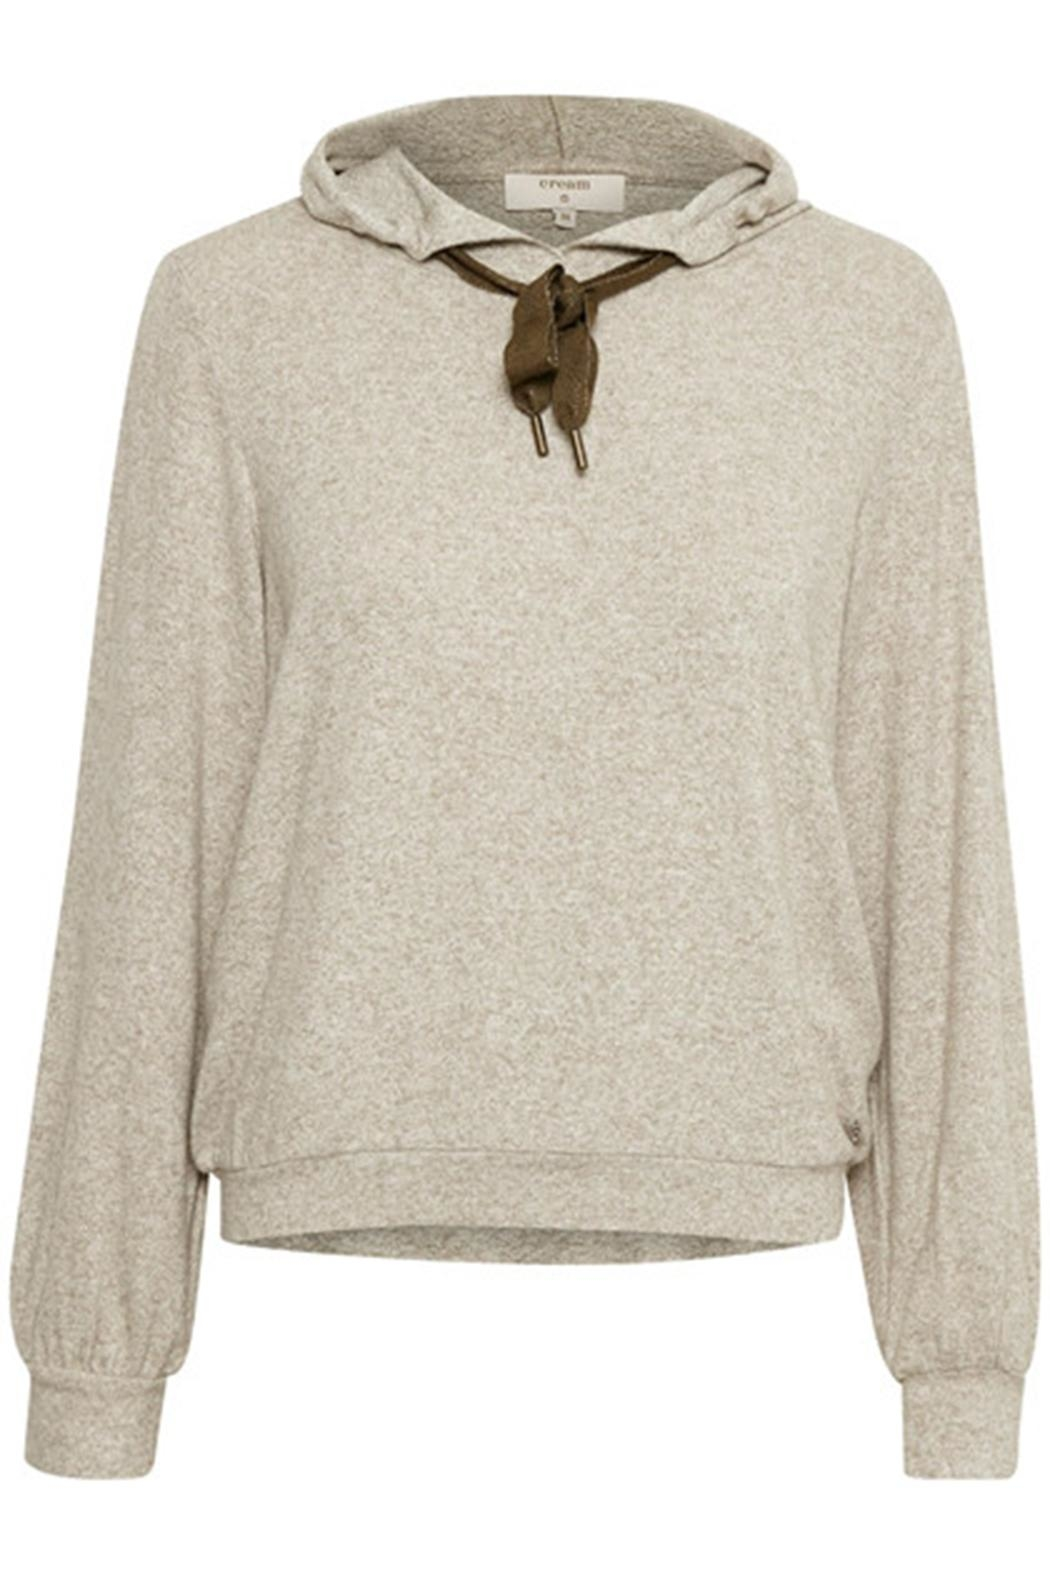 Cream Chanella Hoodie - Front Full Image